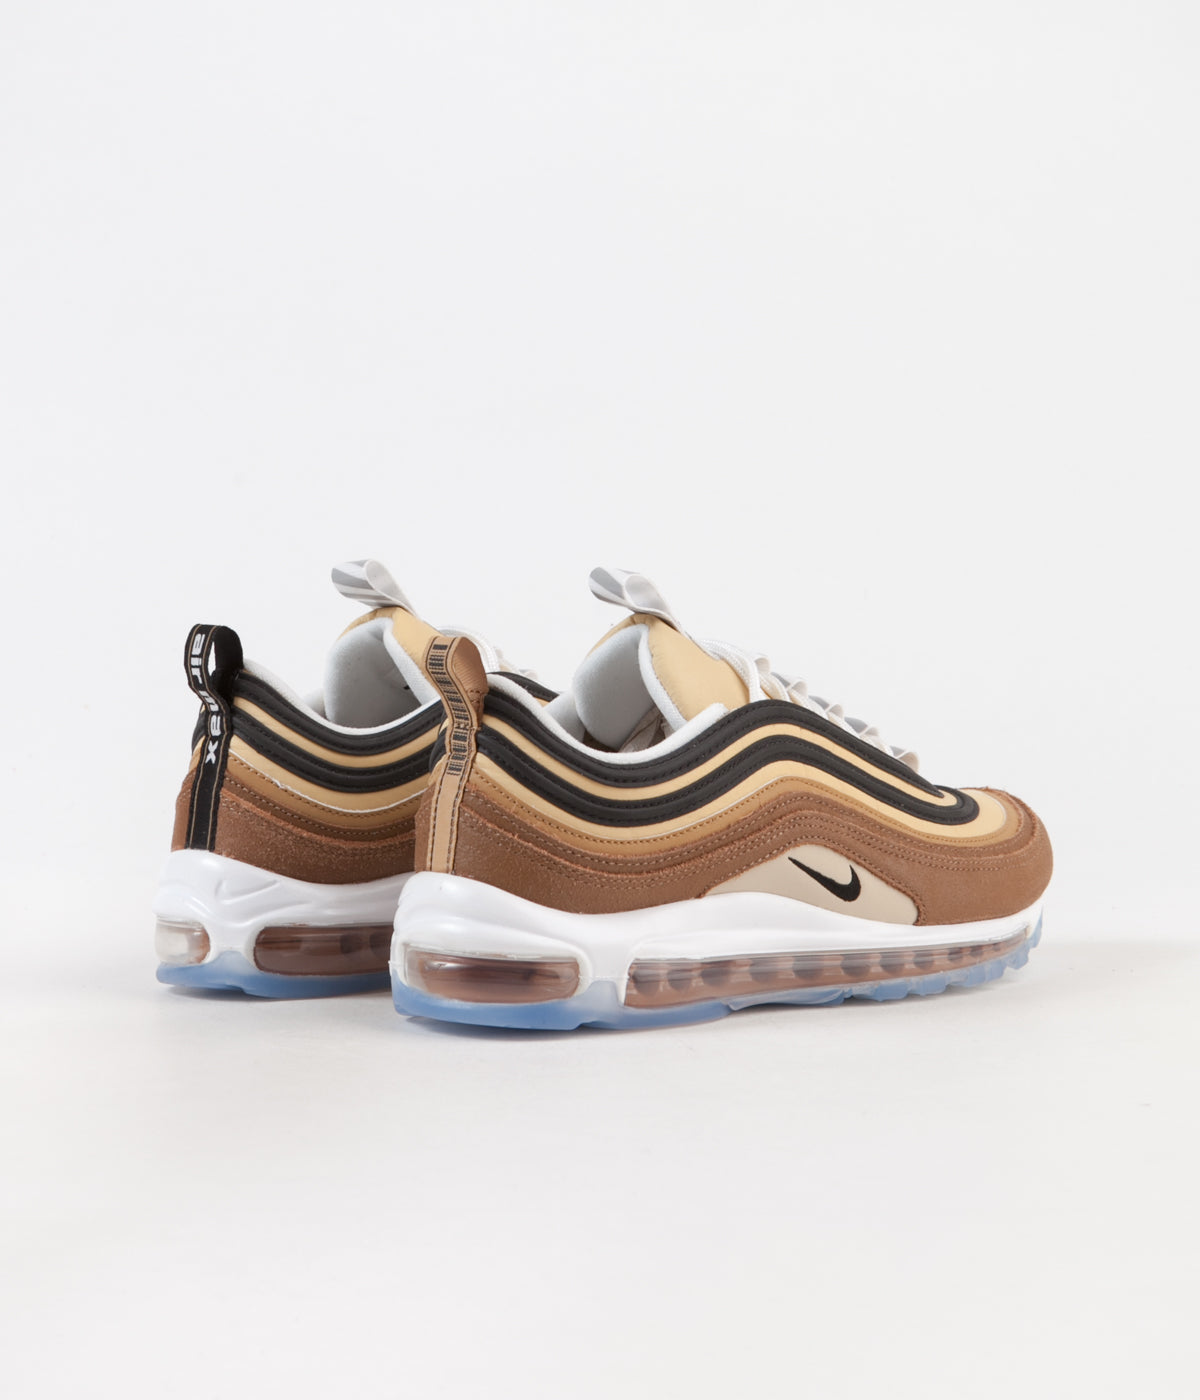 competitive price 6516d a68bb ... Nike Air Max 97 Shoes - Ale Brown  Black - Elemental Gold ...